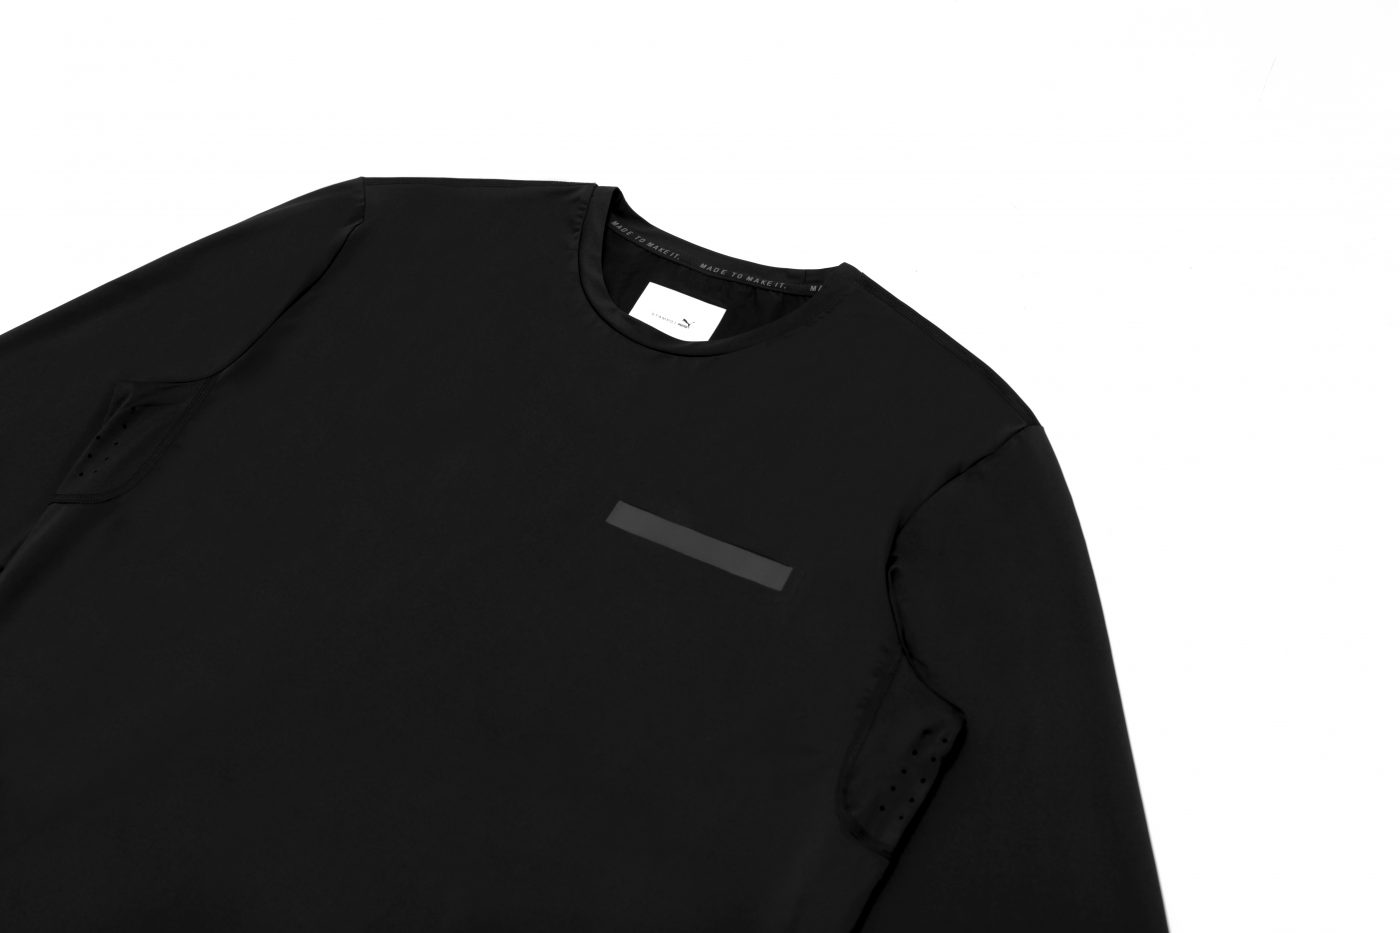 Puma Black Long Sleeve 2